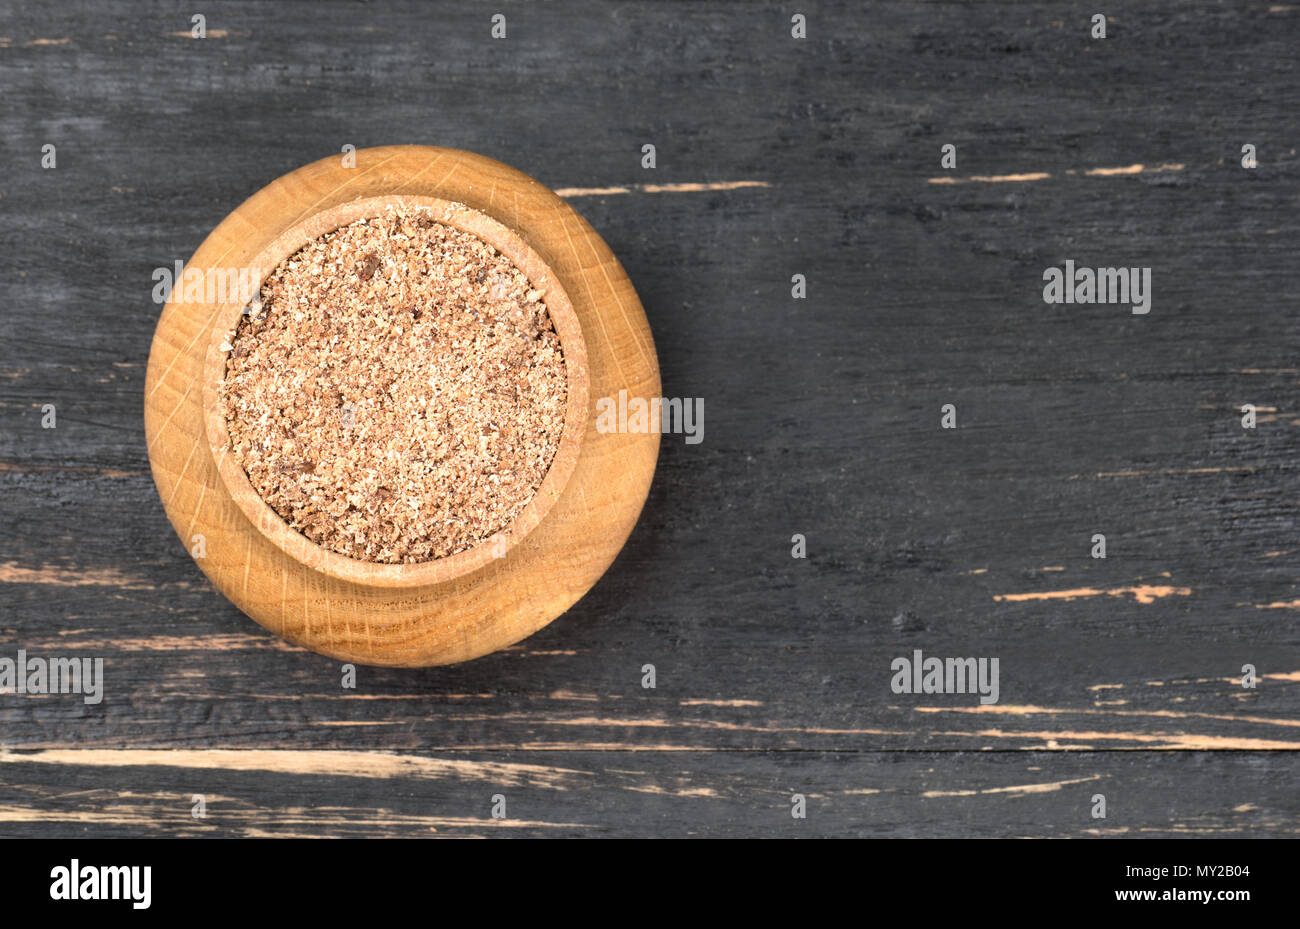 Jar with nutmeg powder on an empty wooden background, top view - Stock Image